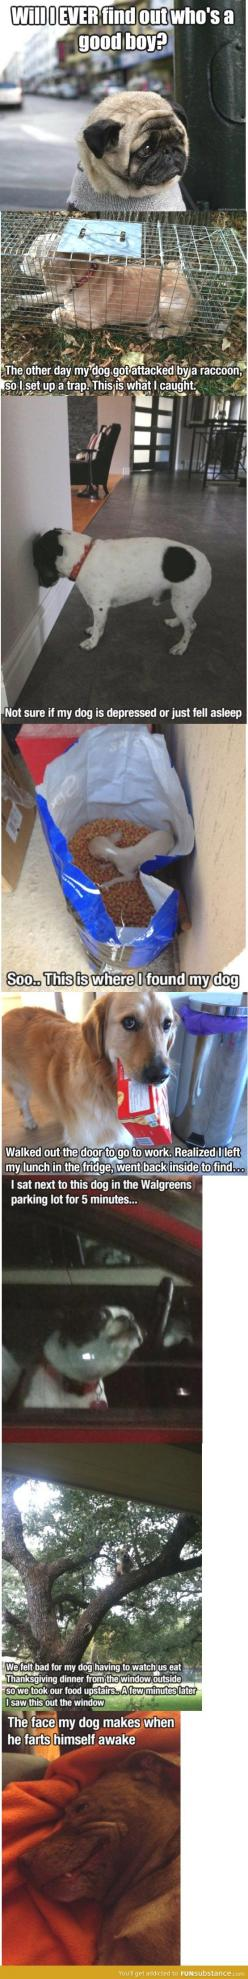 LOL dogs are great: Giggle, Funny Dogs, Silly Dogs, Puppy, Dog Funnies, So Funny, Animal